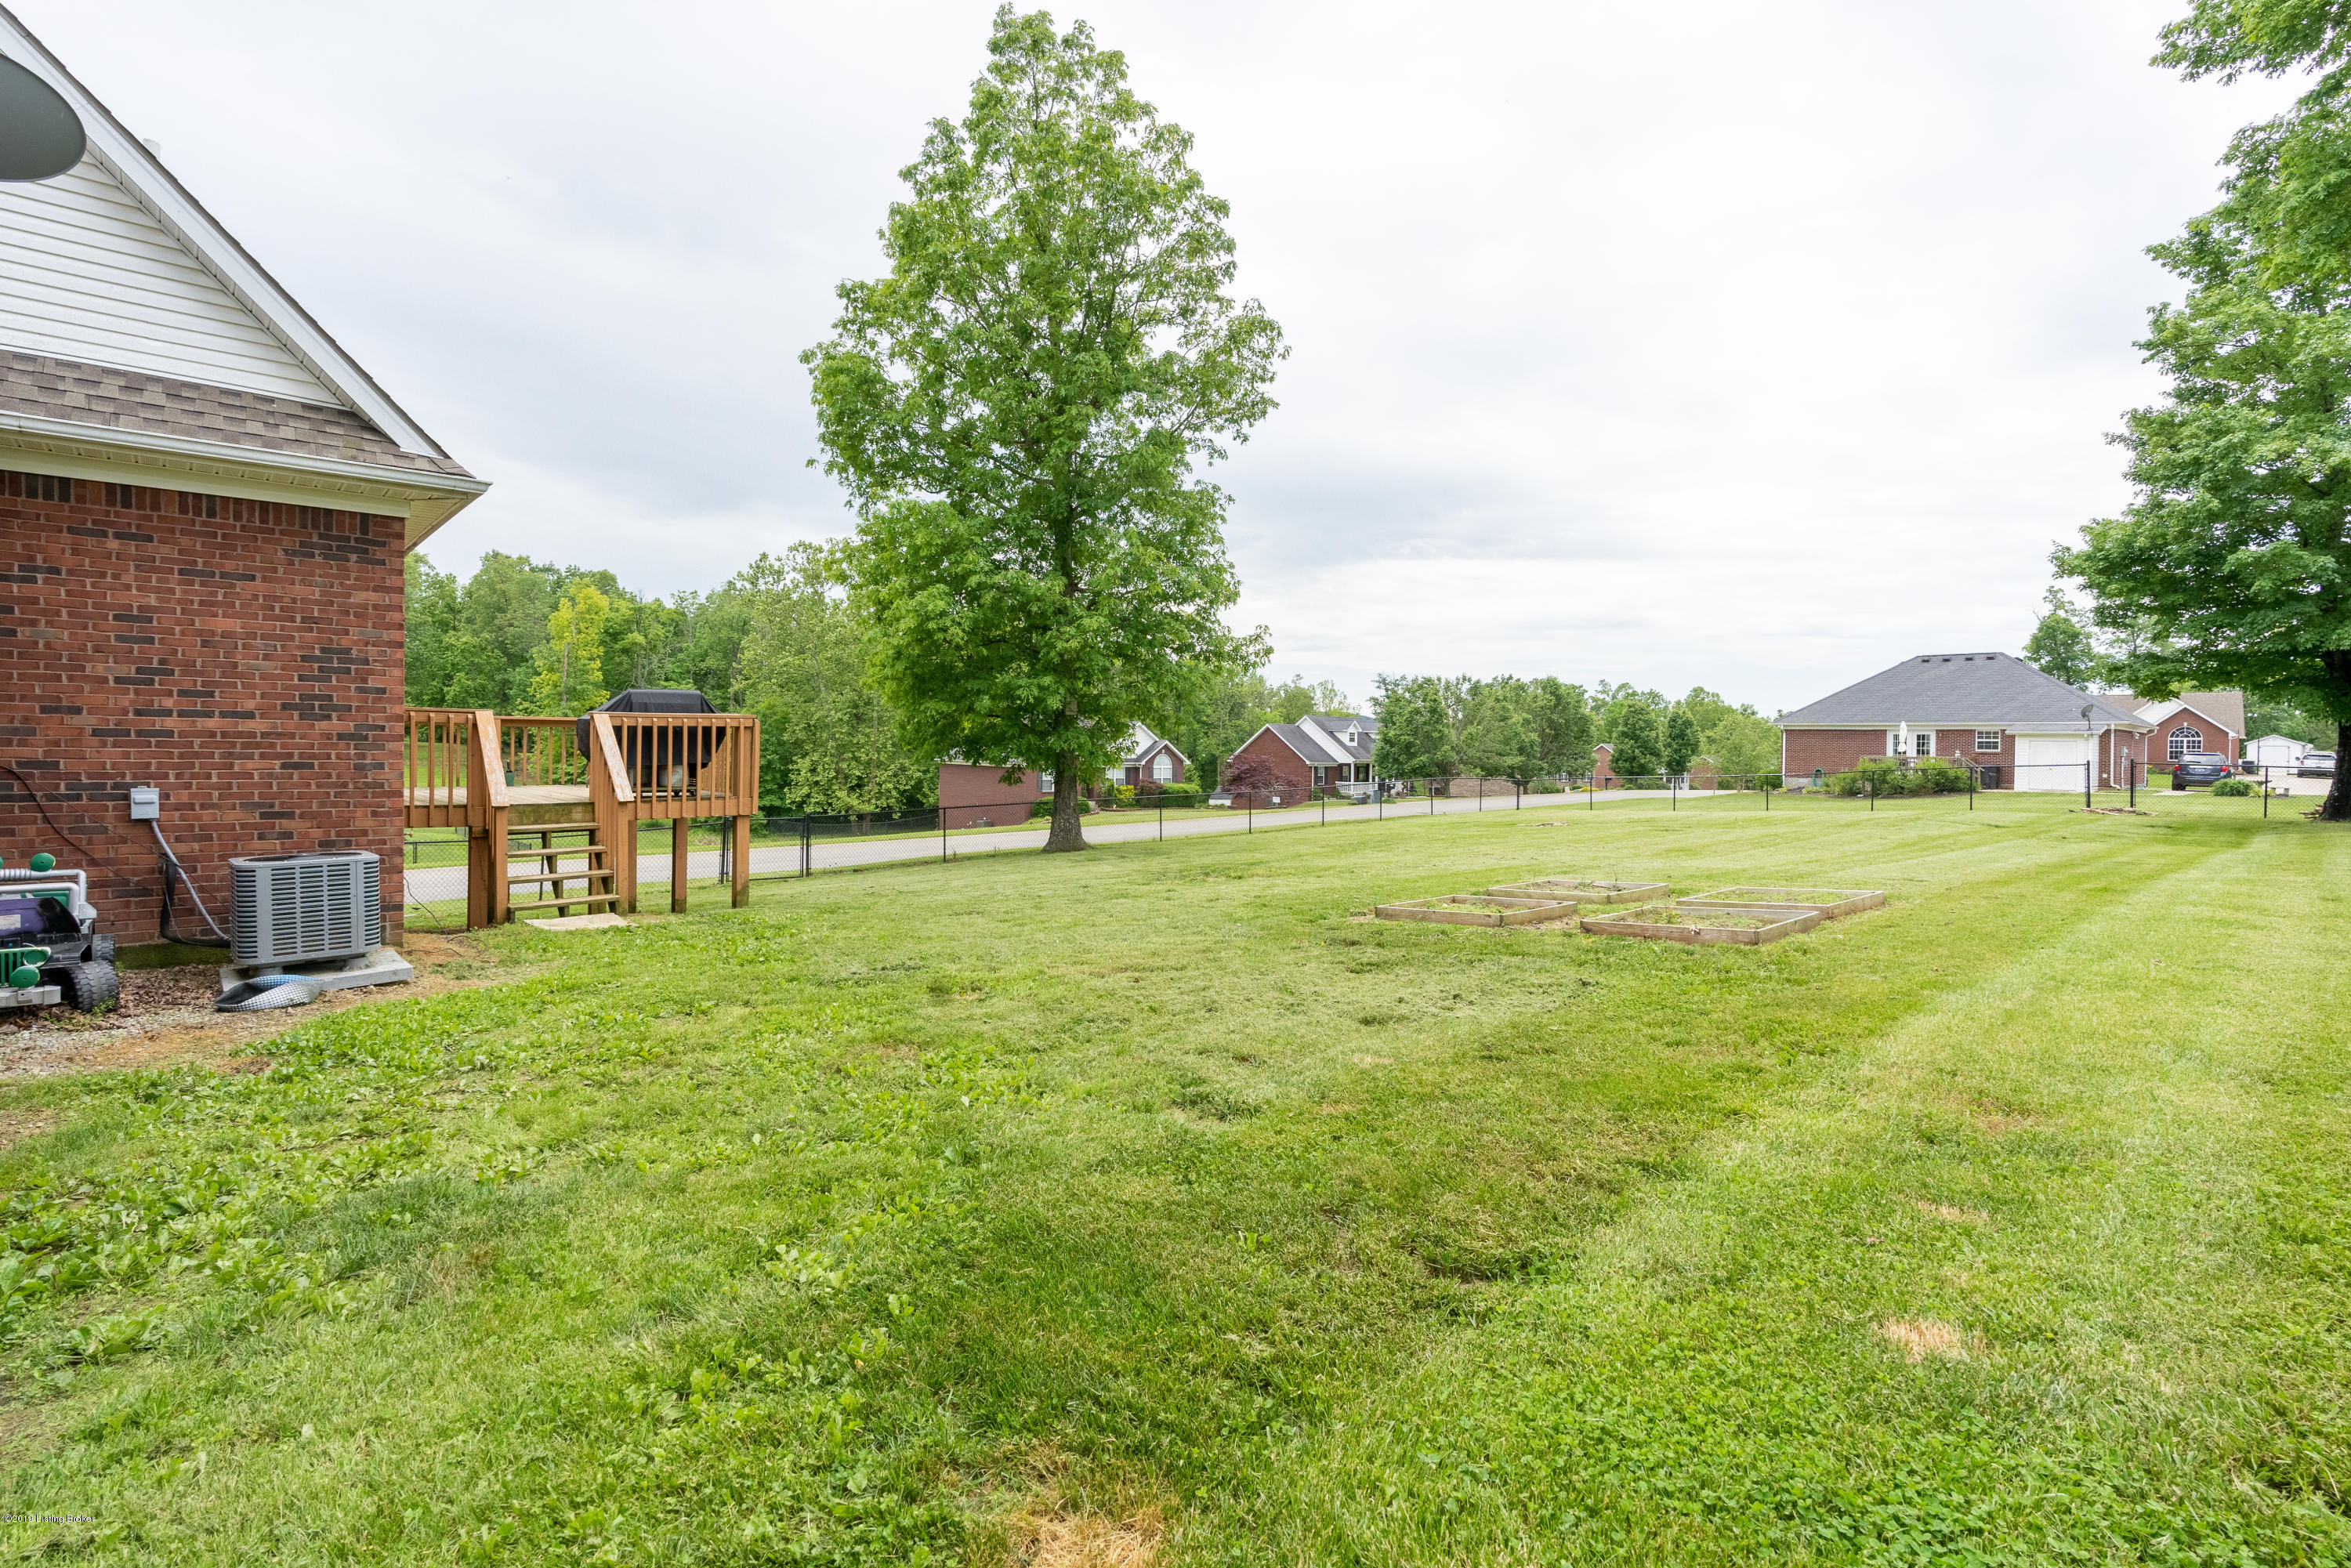 3662 Mobley Mill Rd, Coxs Creek, Kentucky 40013, 3 Bedrooms Bedrooms, 8 Rooms Rooms,4 BathroomsBathrooms,Residential,For Sale,Mobley Mill,1532158